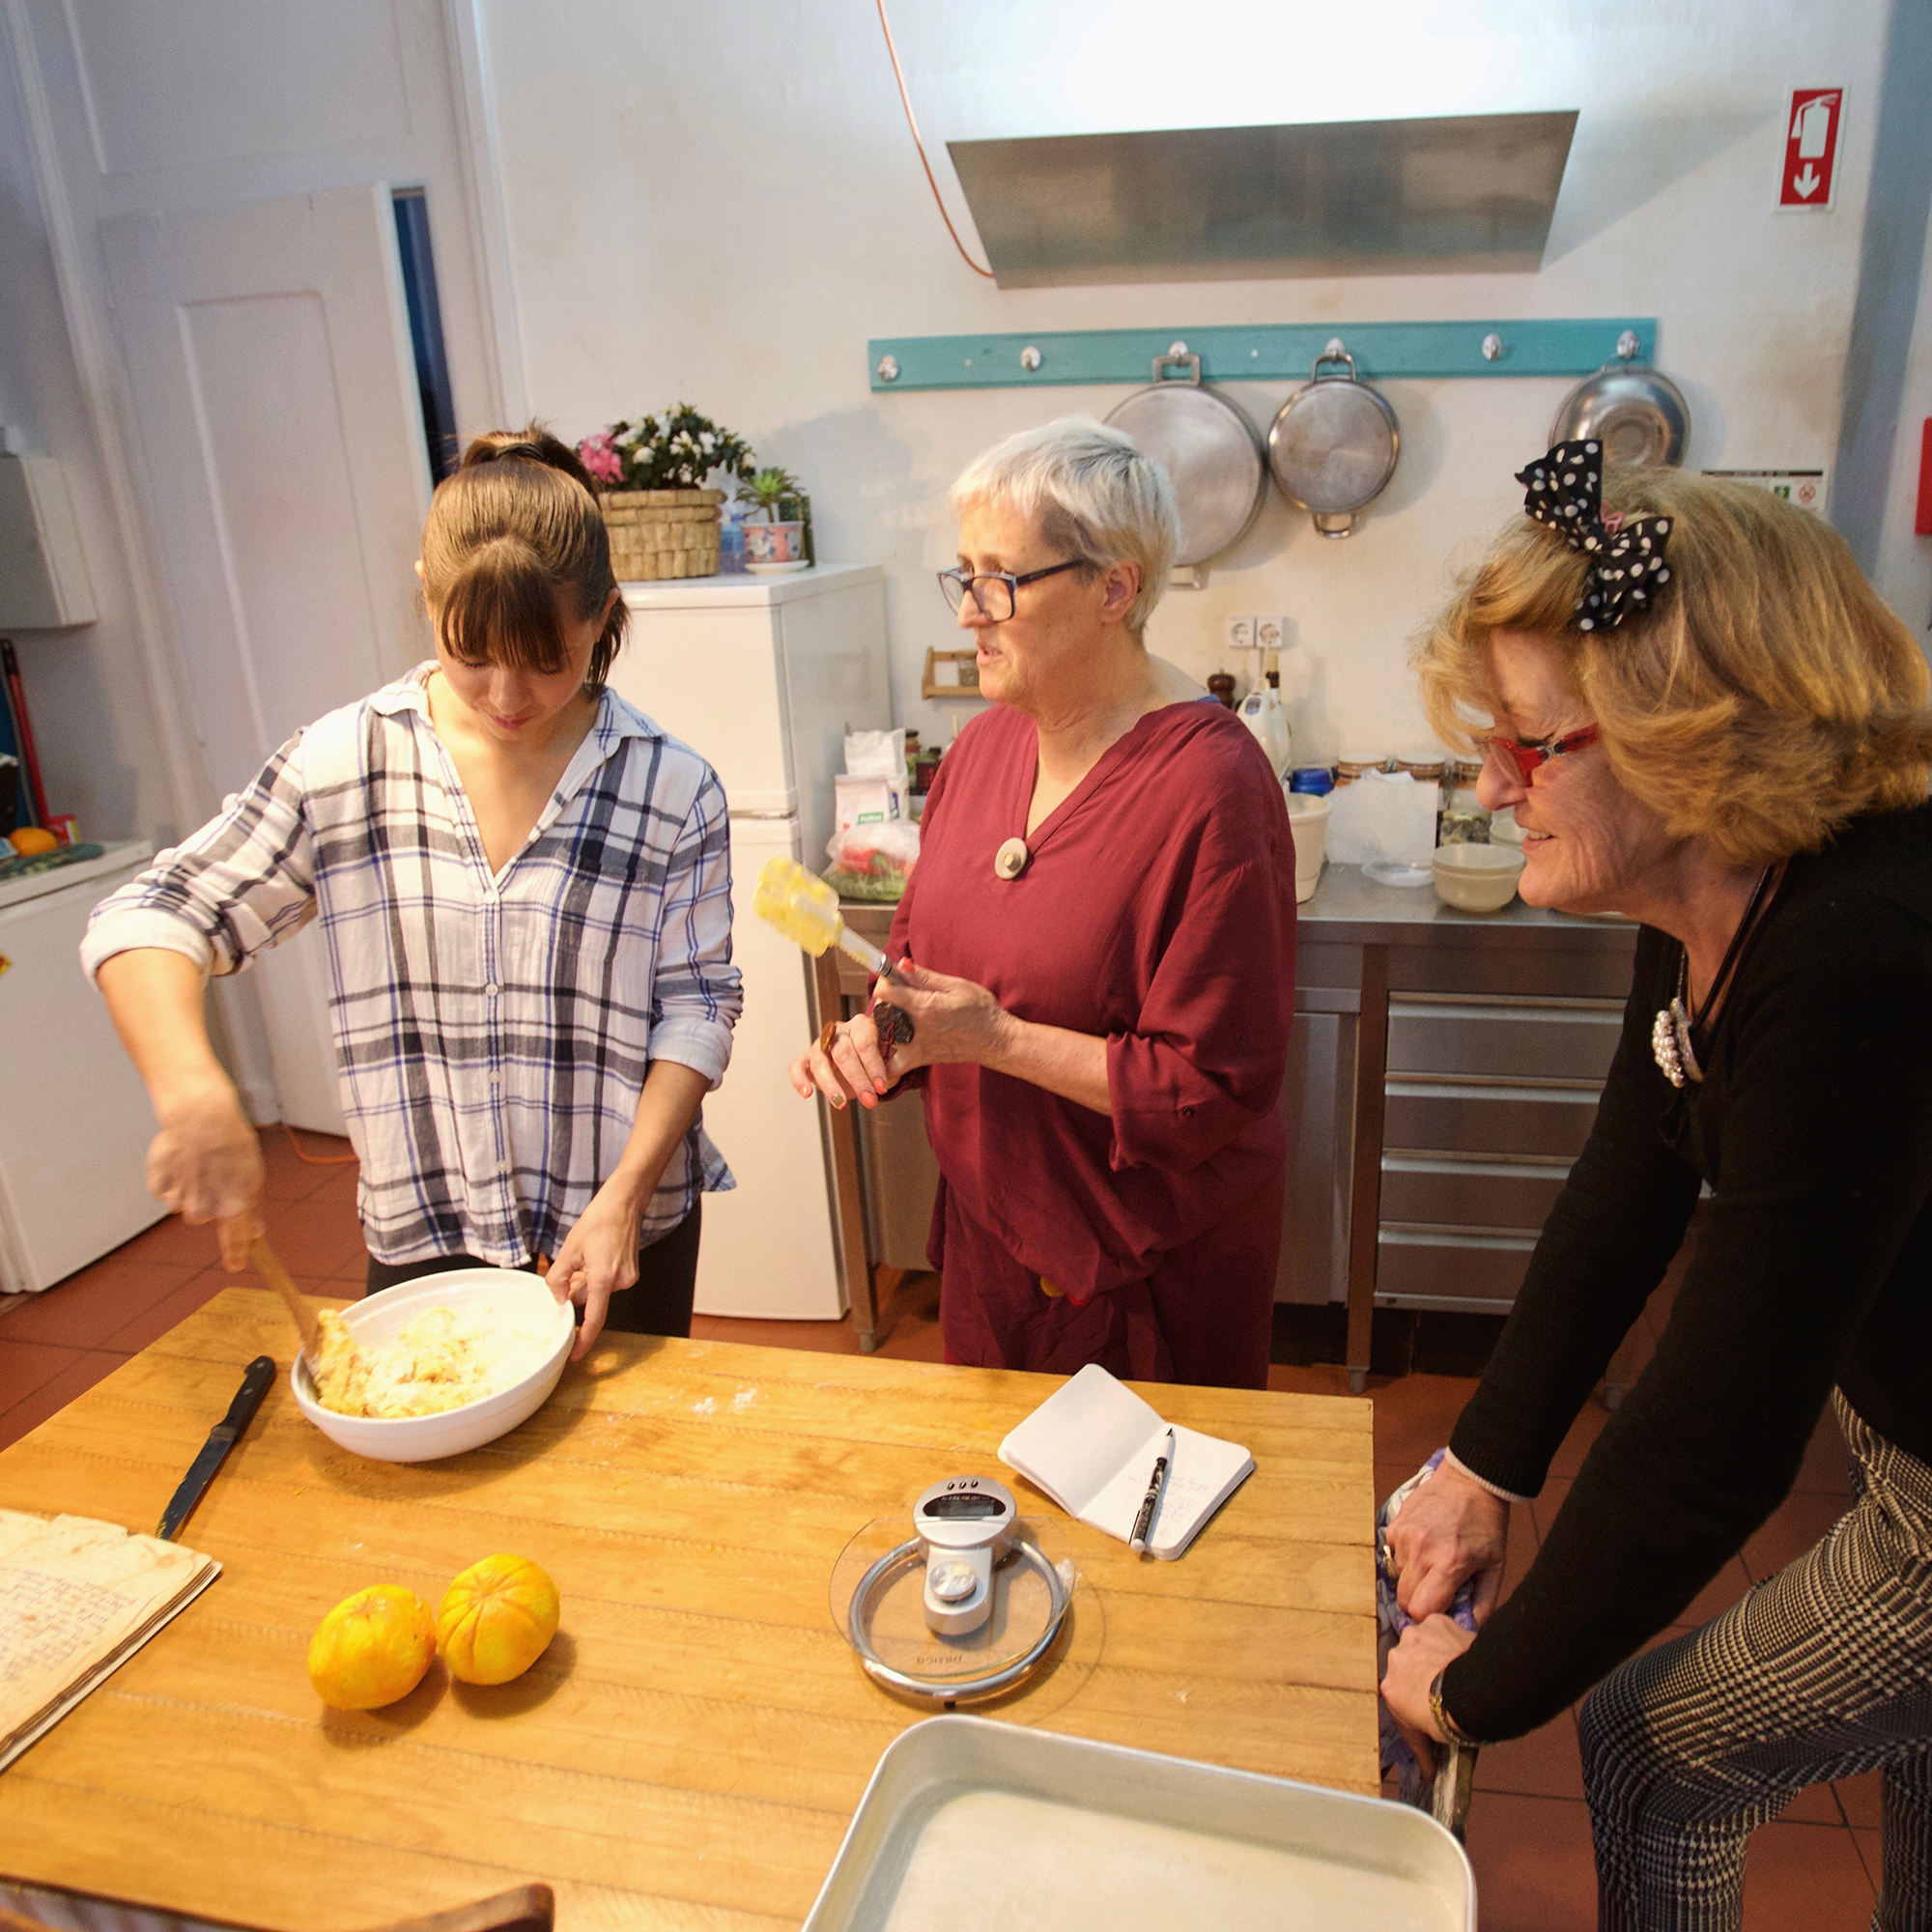 3 women cooking together in a kitchen